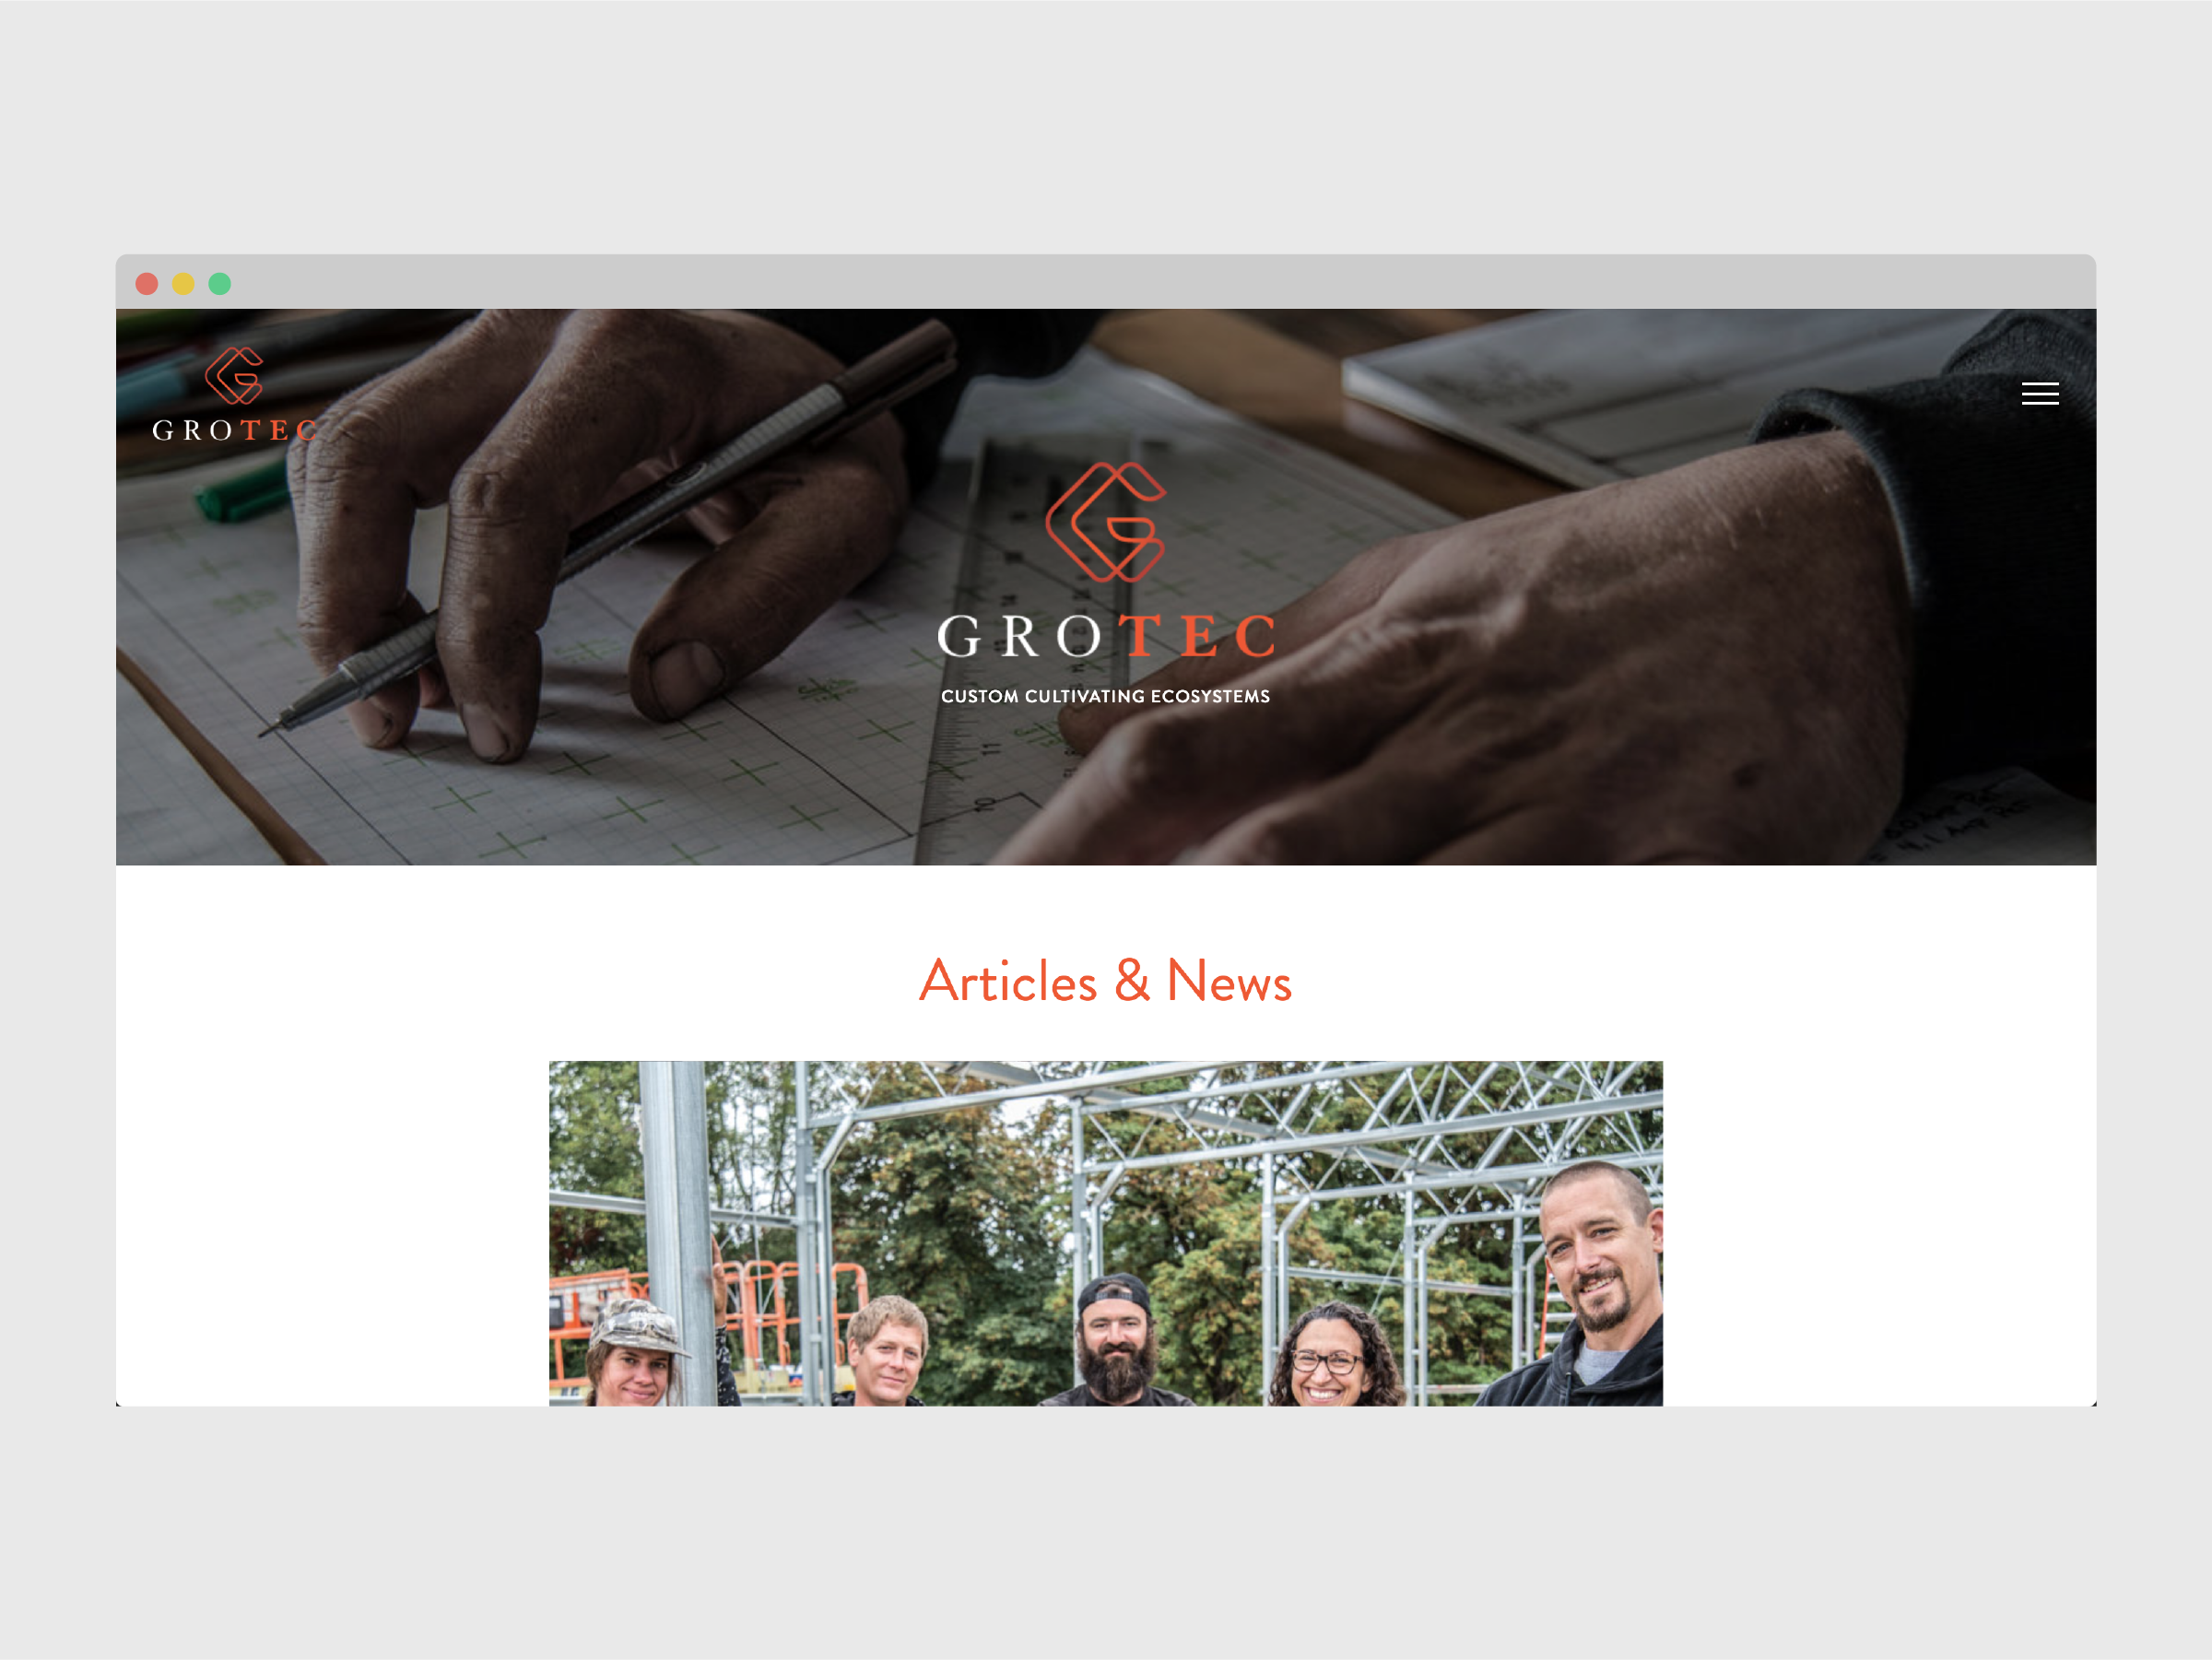 Grotec articles and news blog page